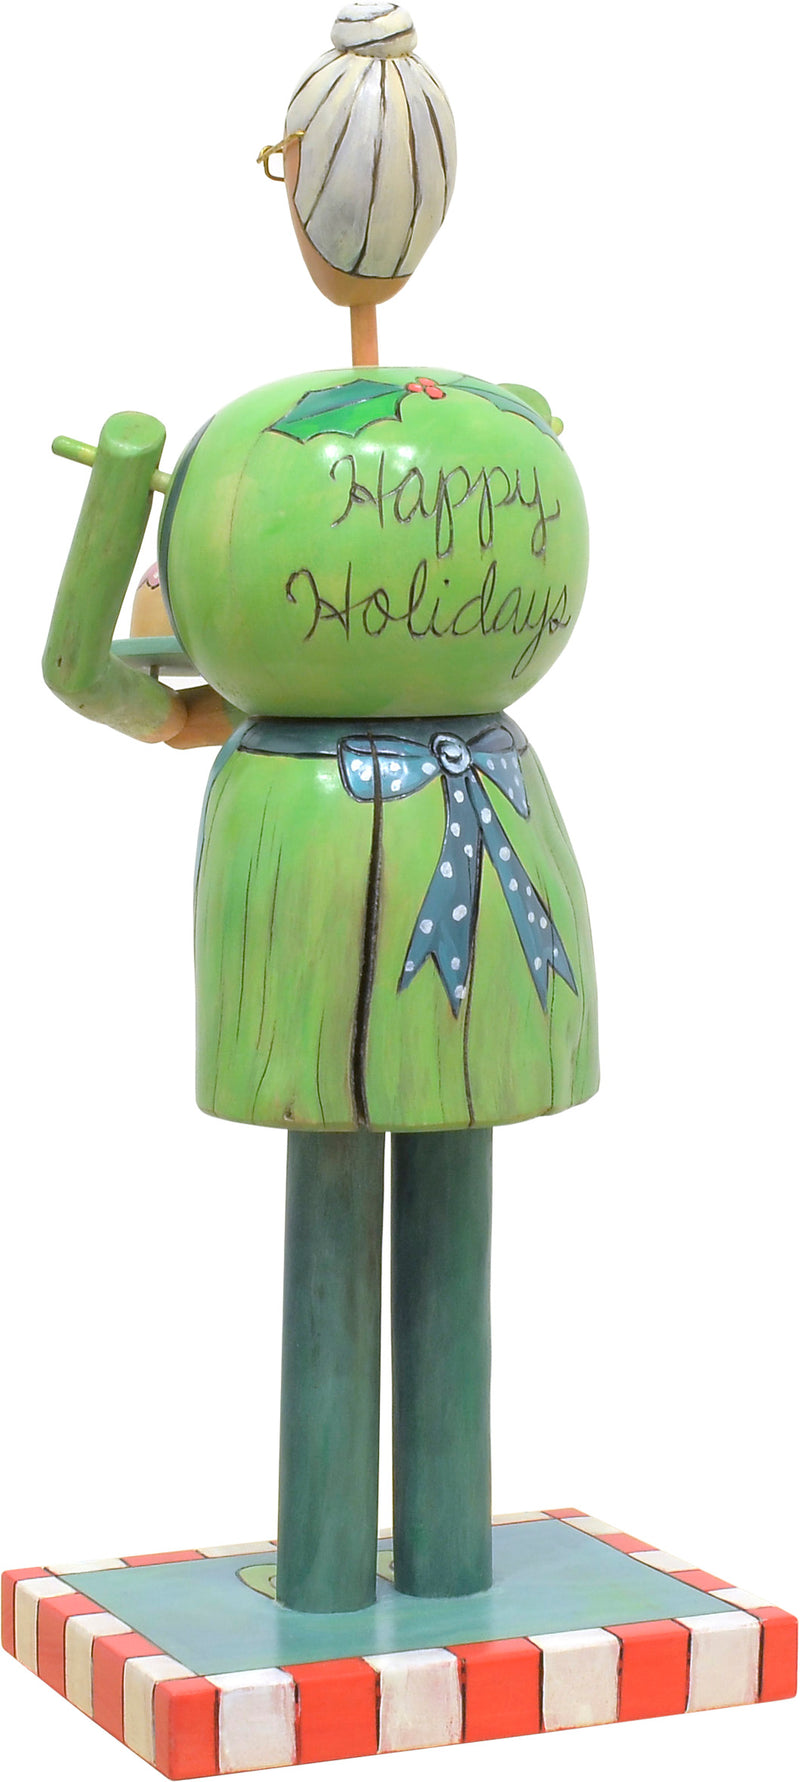 Mrs. Claus Sculpture –  Green and blue Mrs. Claus with a crazy quilt icon apron and a cake